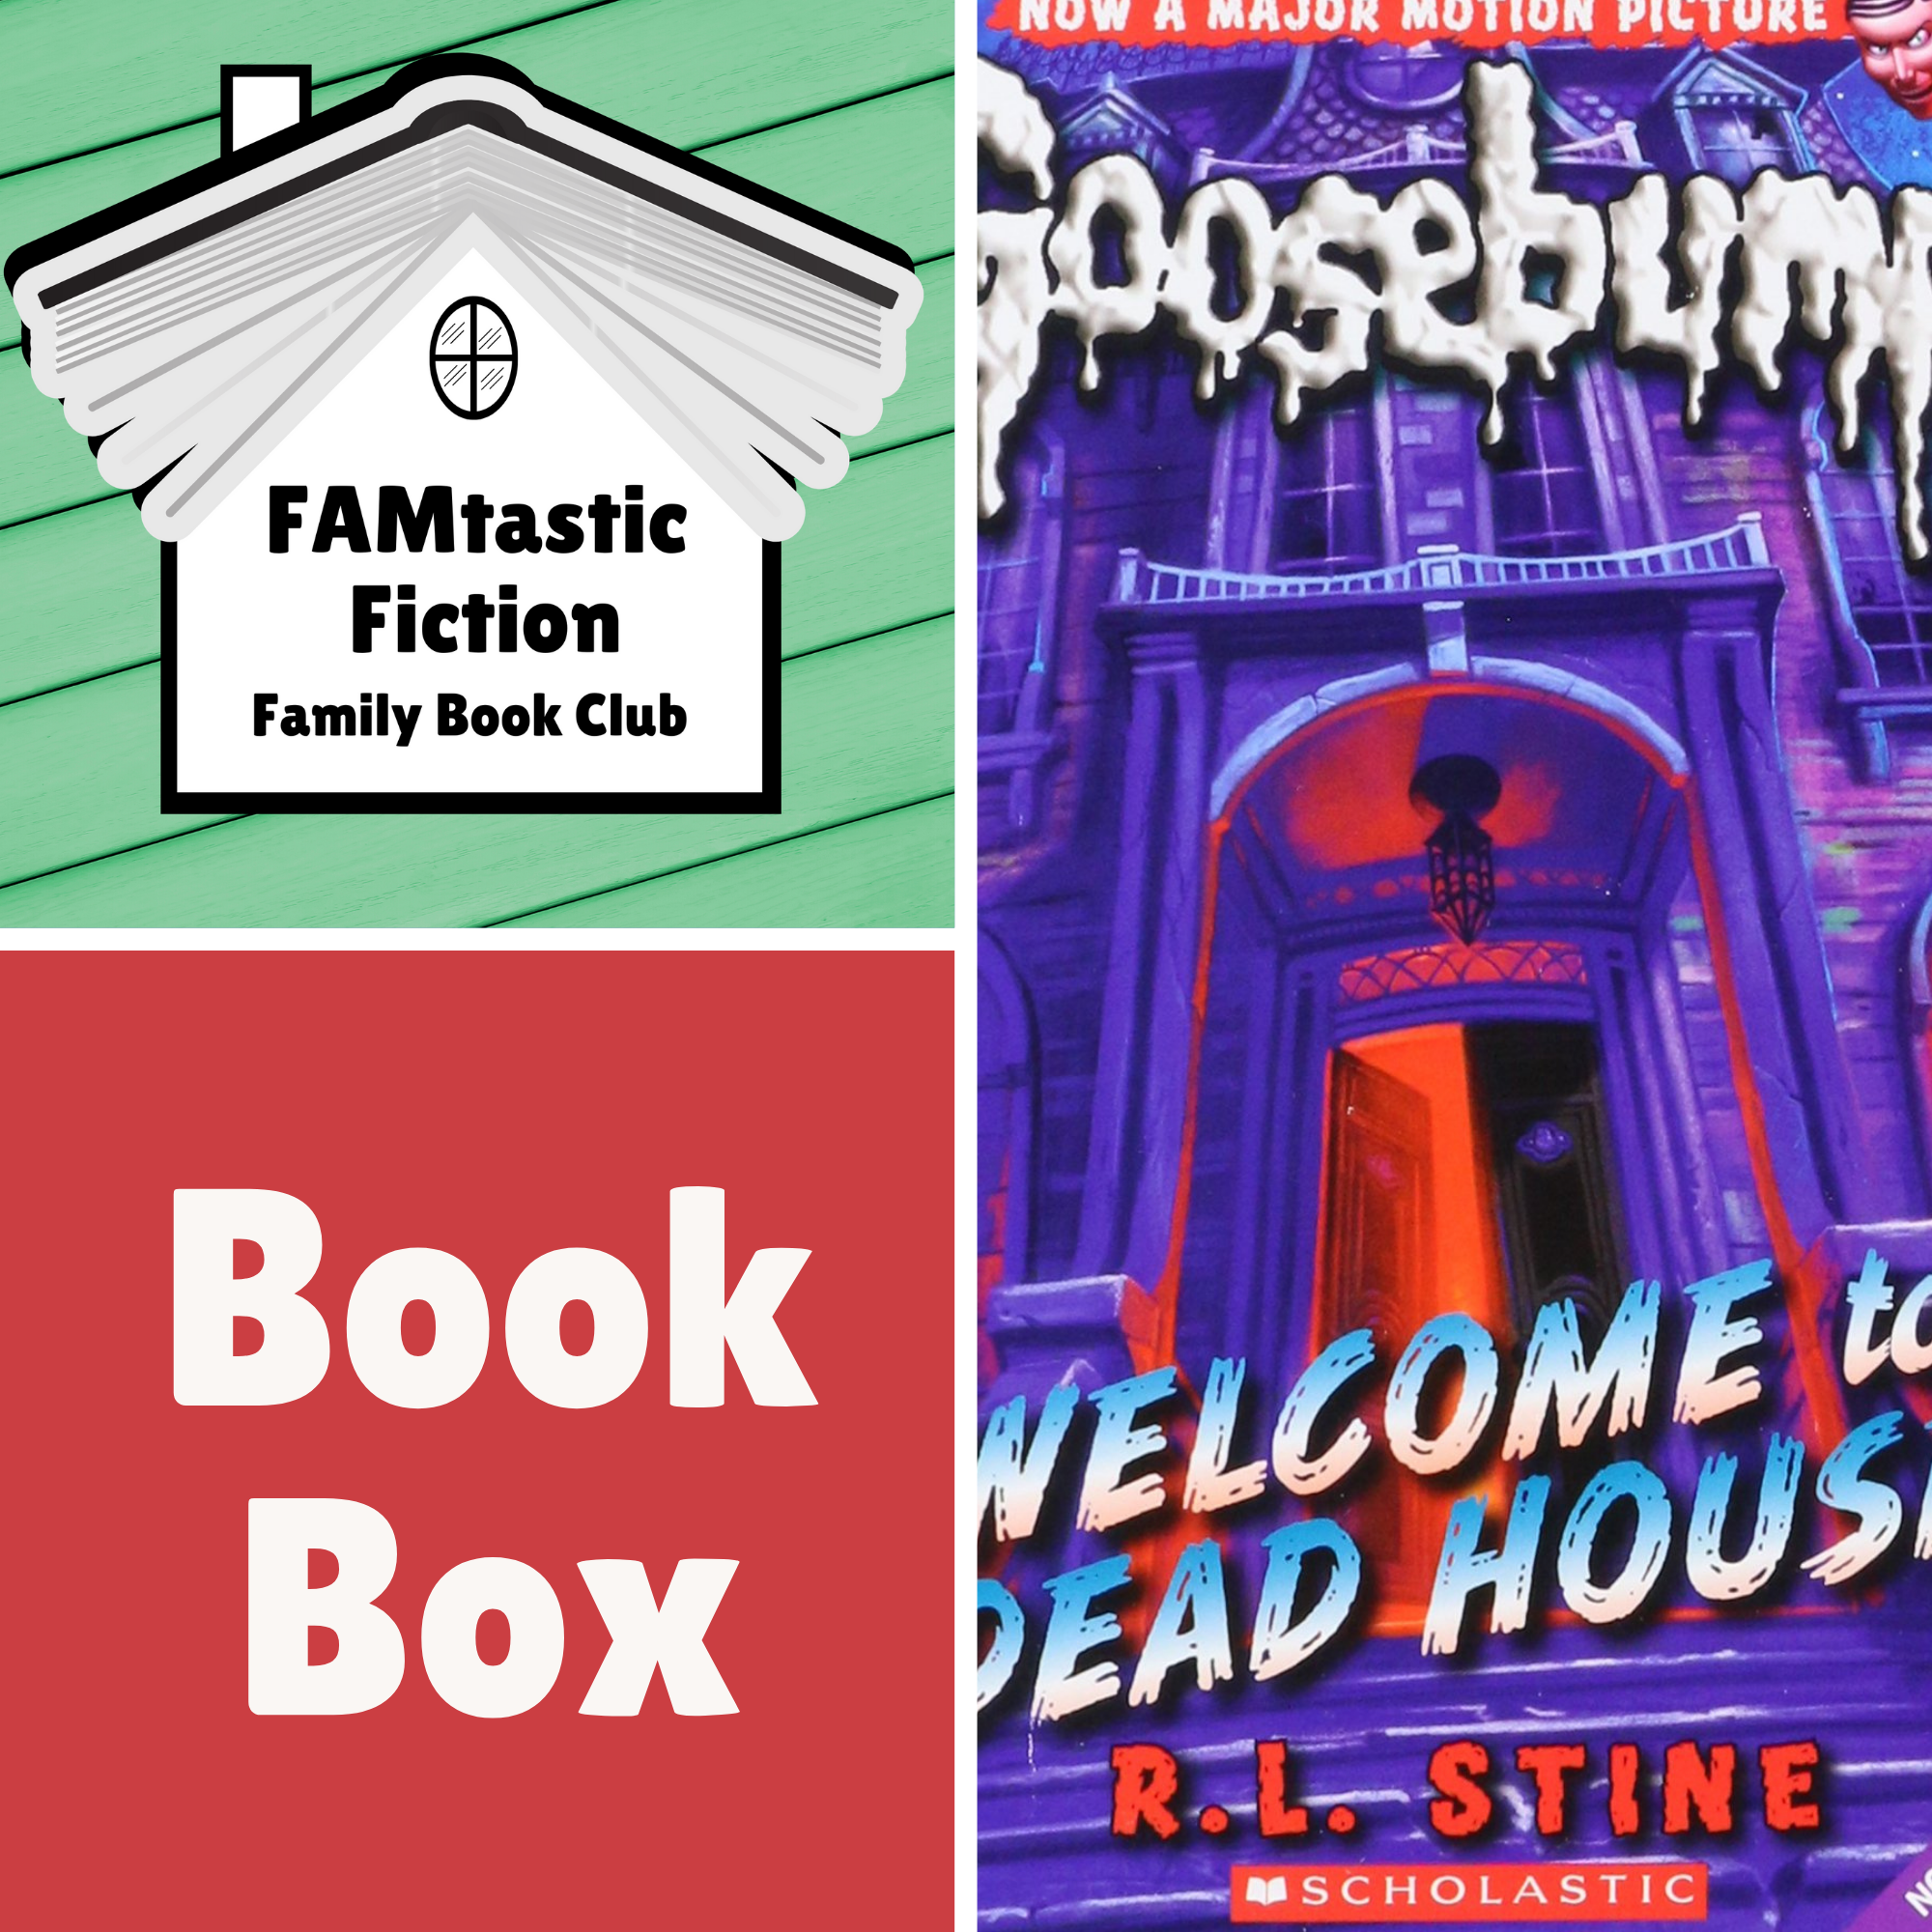 FAMtastic Fiction Book Box - Goosebumps: Welcome to Dead House